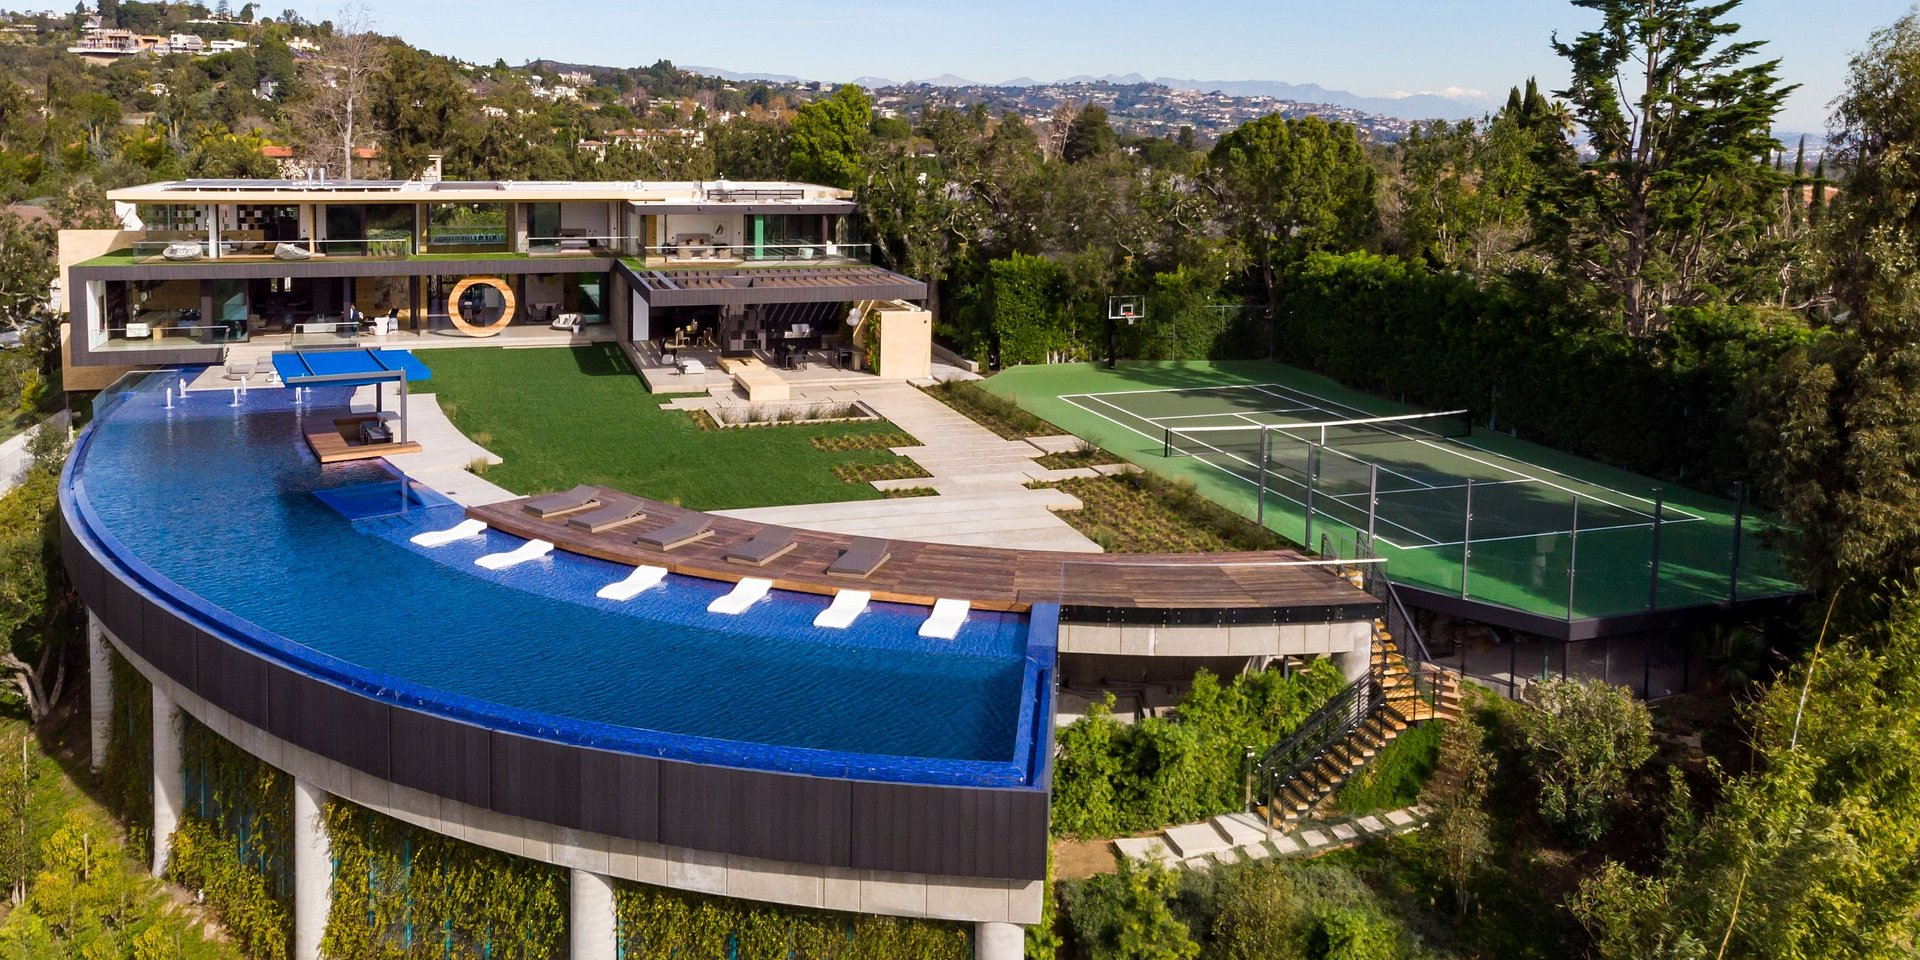 Coldwell Banker's Florence Mattar Represents Buyer in Purchase of Bel Air Property for $45 Million